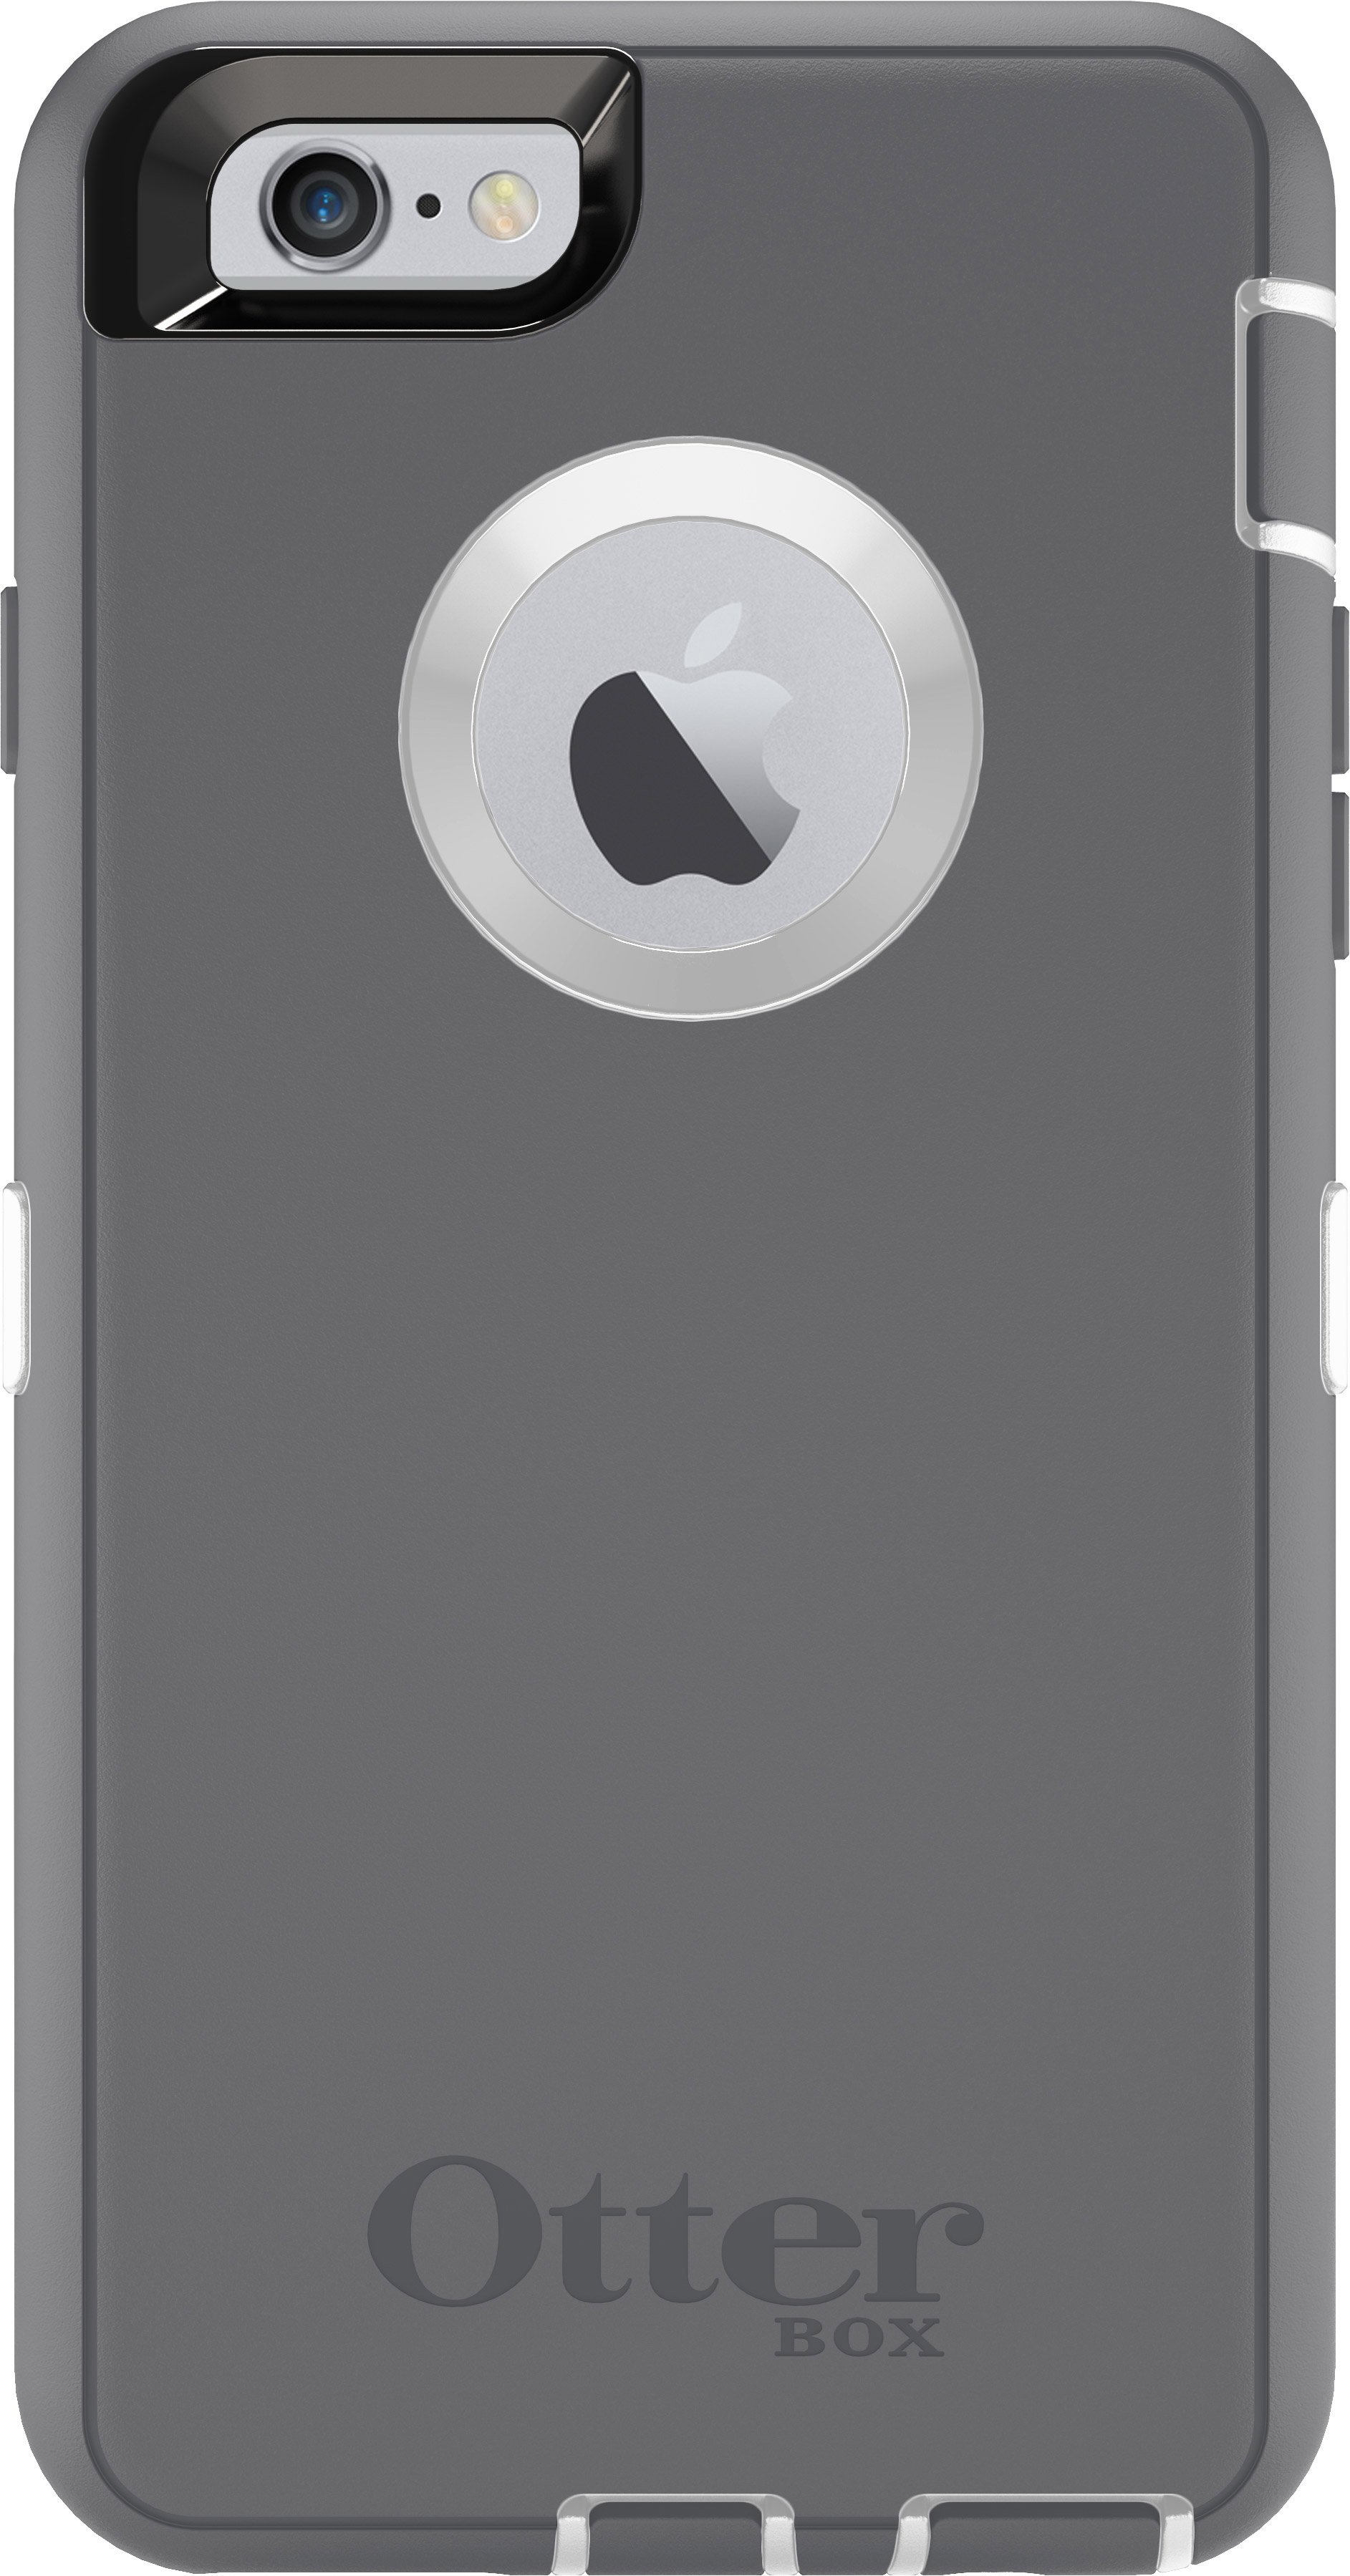 OtterBox Defender Series Pro Pack for iPhone 6/6s